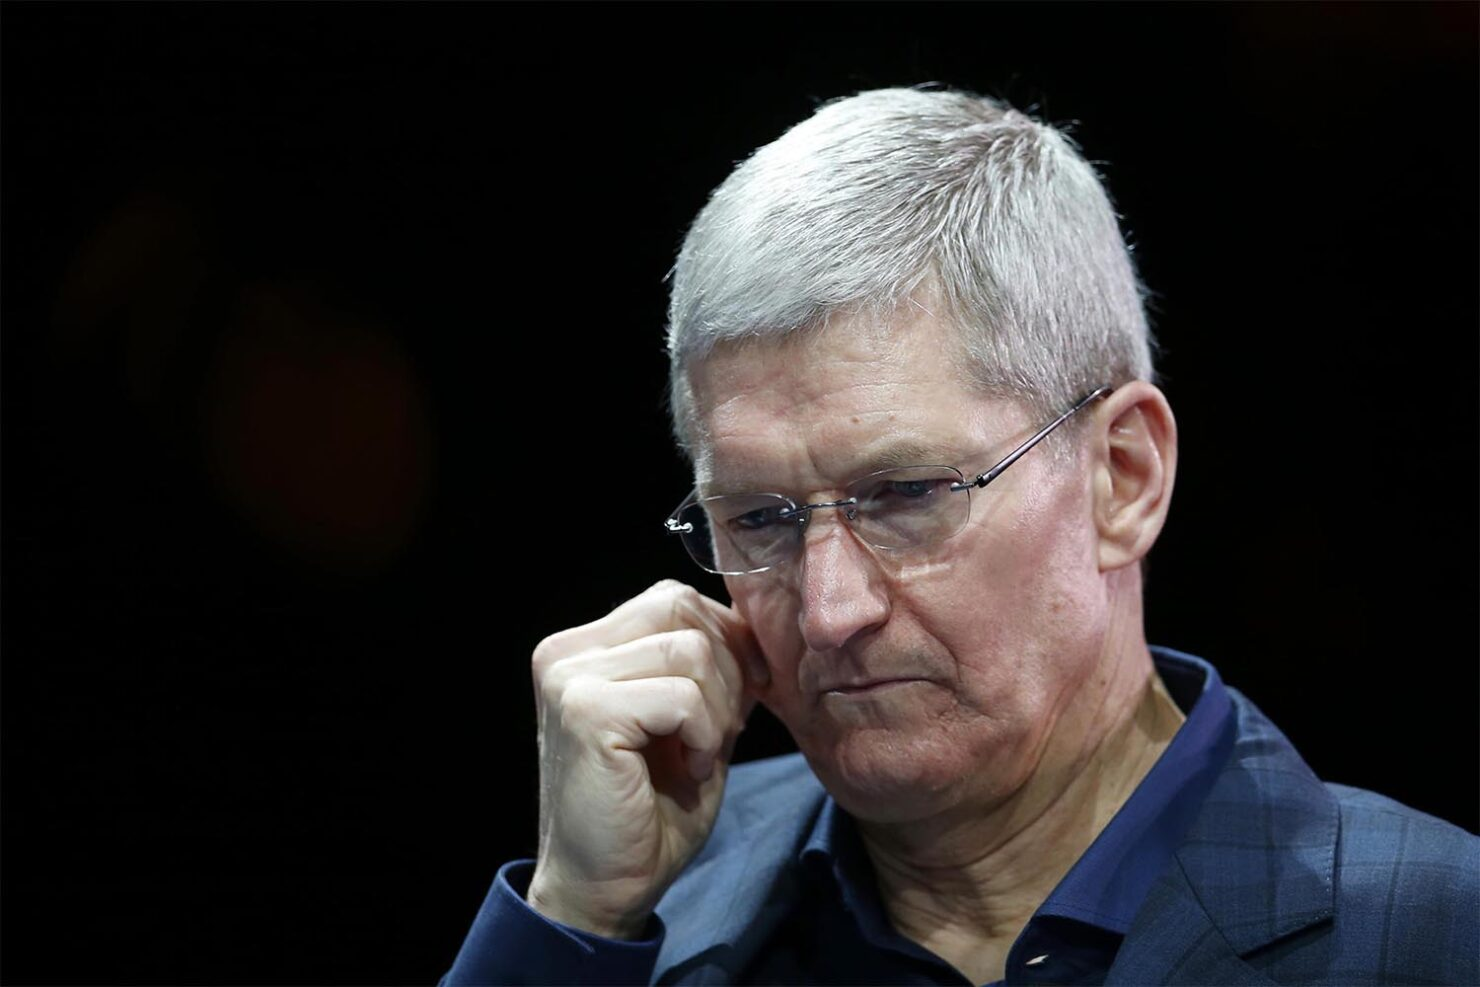 Tim Cook Worried About Apple Devices Used for 'Endless Scrolling' - Wants Apple Devices to Be Used for Creativity